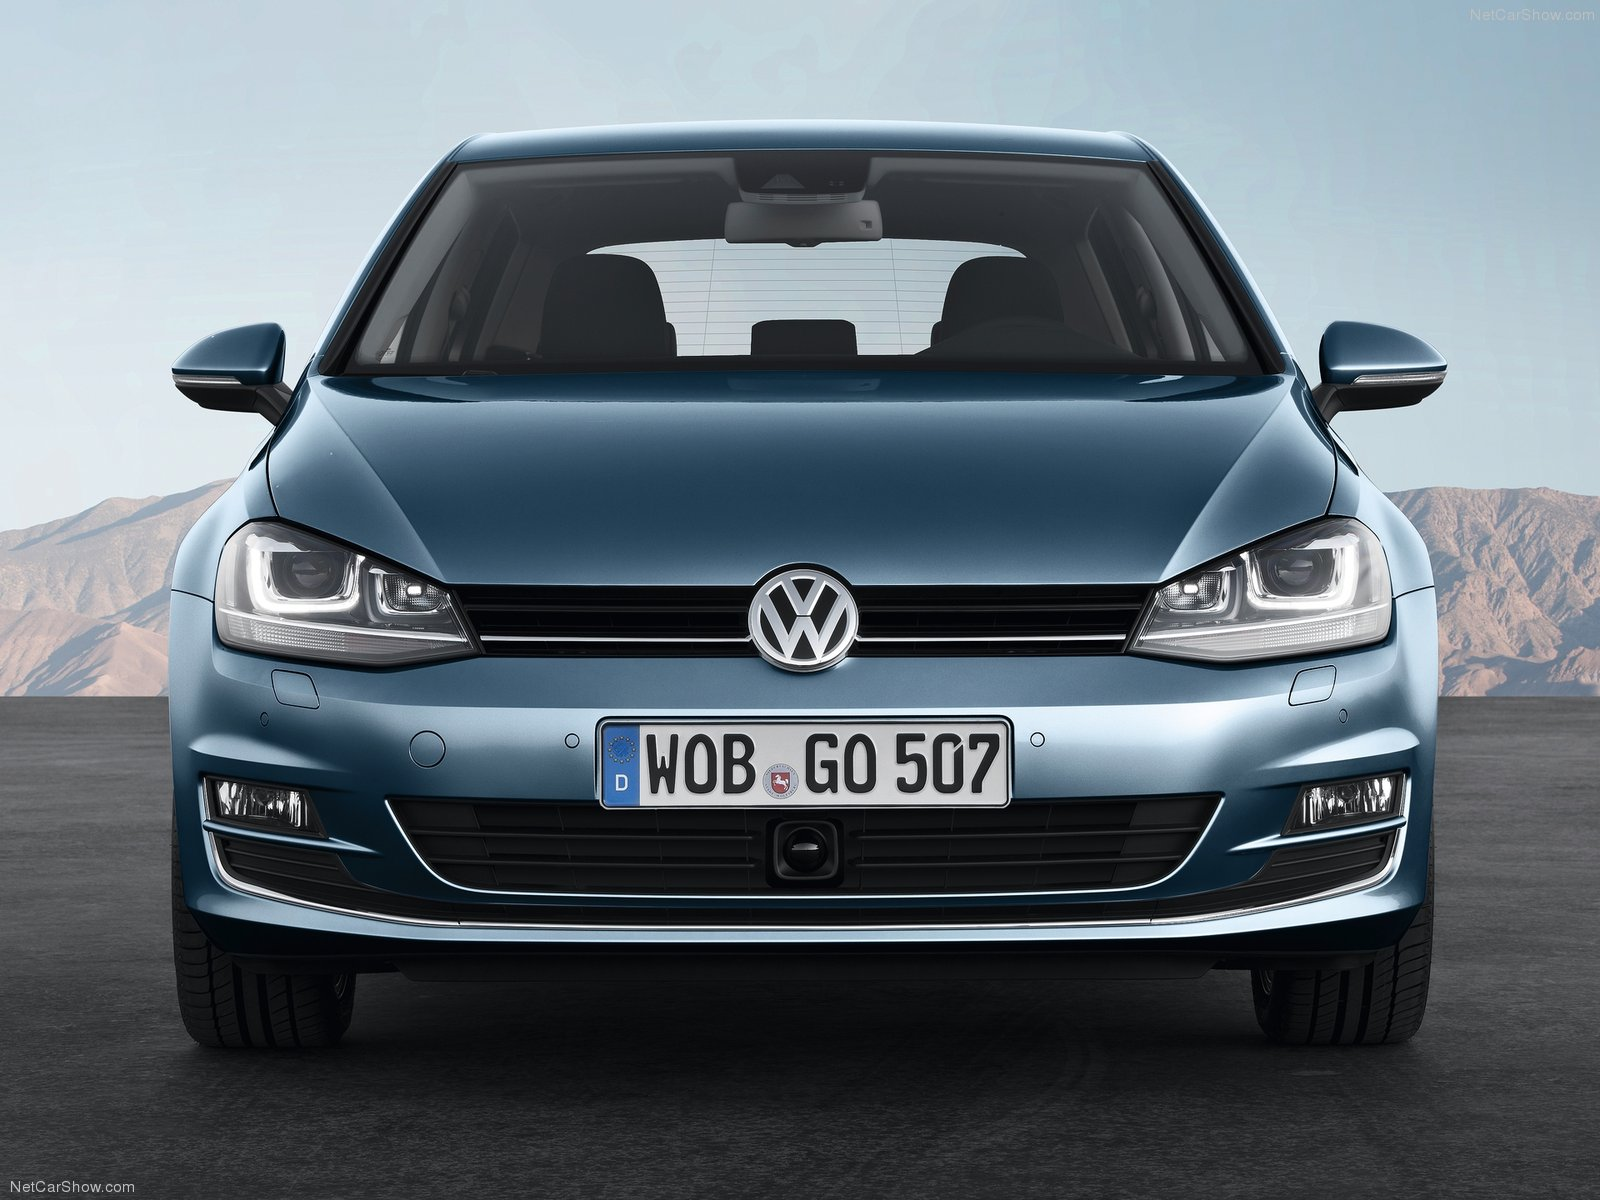 Volkswagen-Golf_2013_1600x1200_wallpaper_31